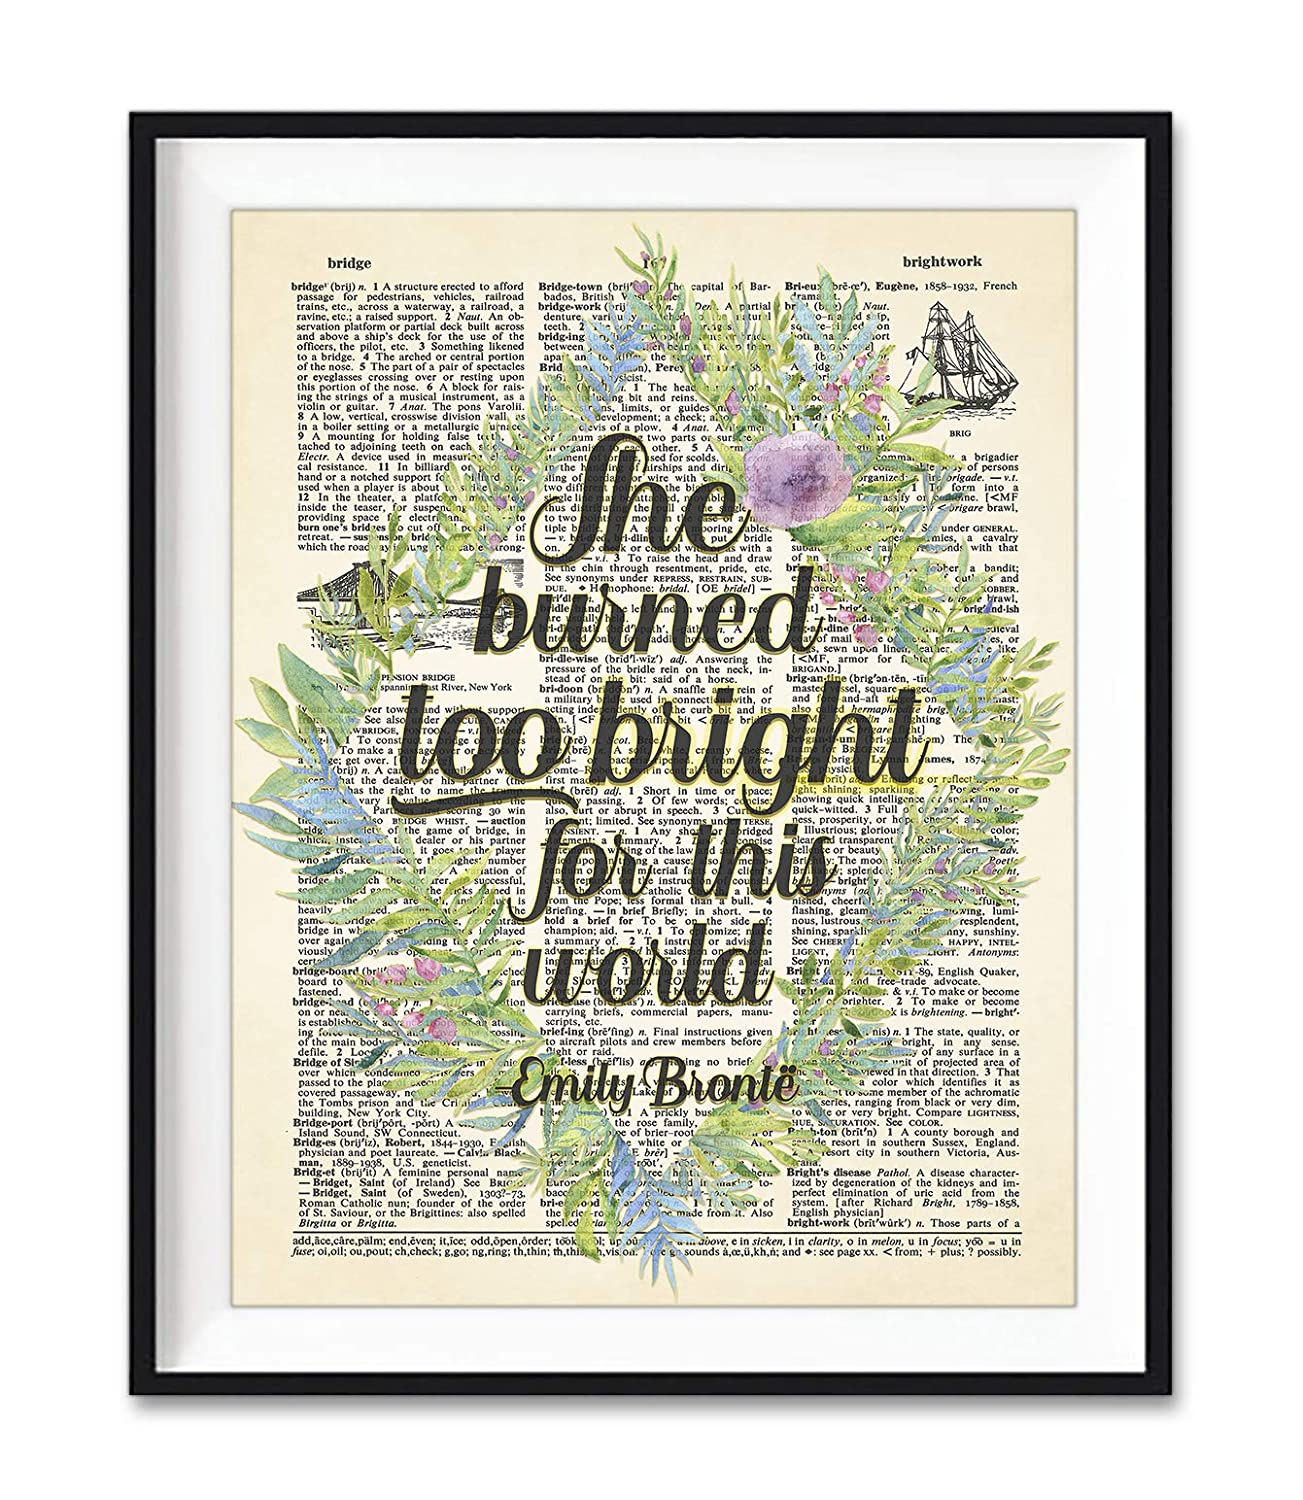 Emily Bronte Literary Quote Popularity She Burned Bright Worl Dealing full price reduction for this Too